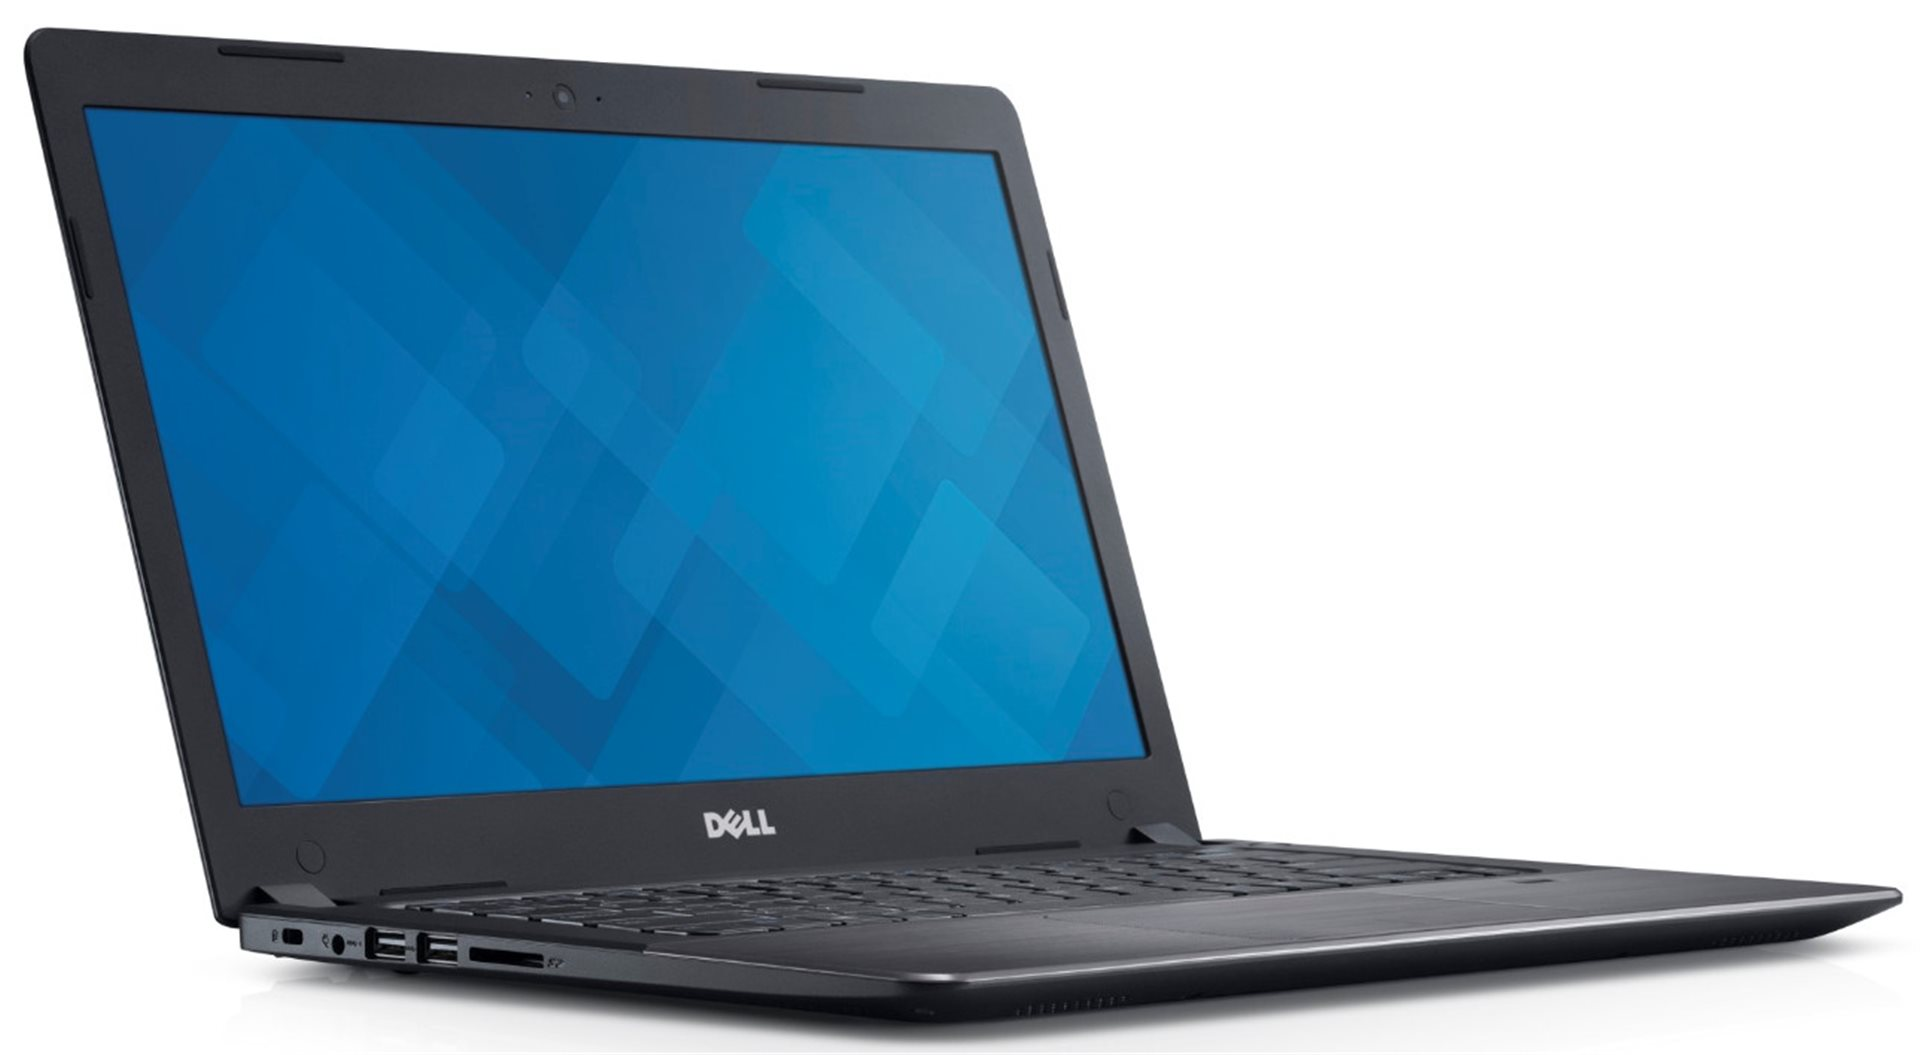 Dell Vostro 5480 First Impressions Thin Light And Stylish Business Notebook as well K 1600 together with Toyota Mirai Photo Gallery 18841 additionally Imac Pro Features Faq Pricing Specs Release additionally Res E Markets. on cooling system